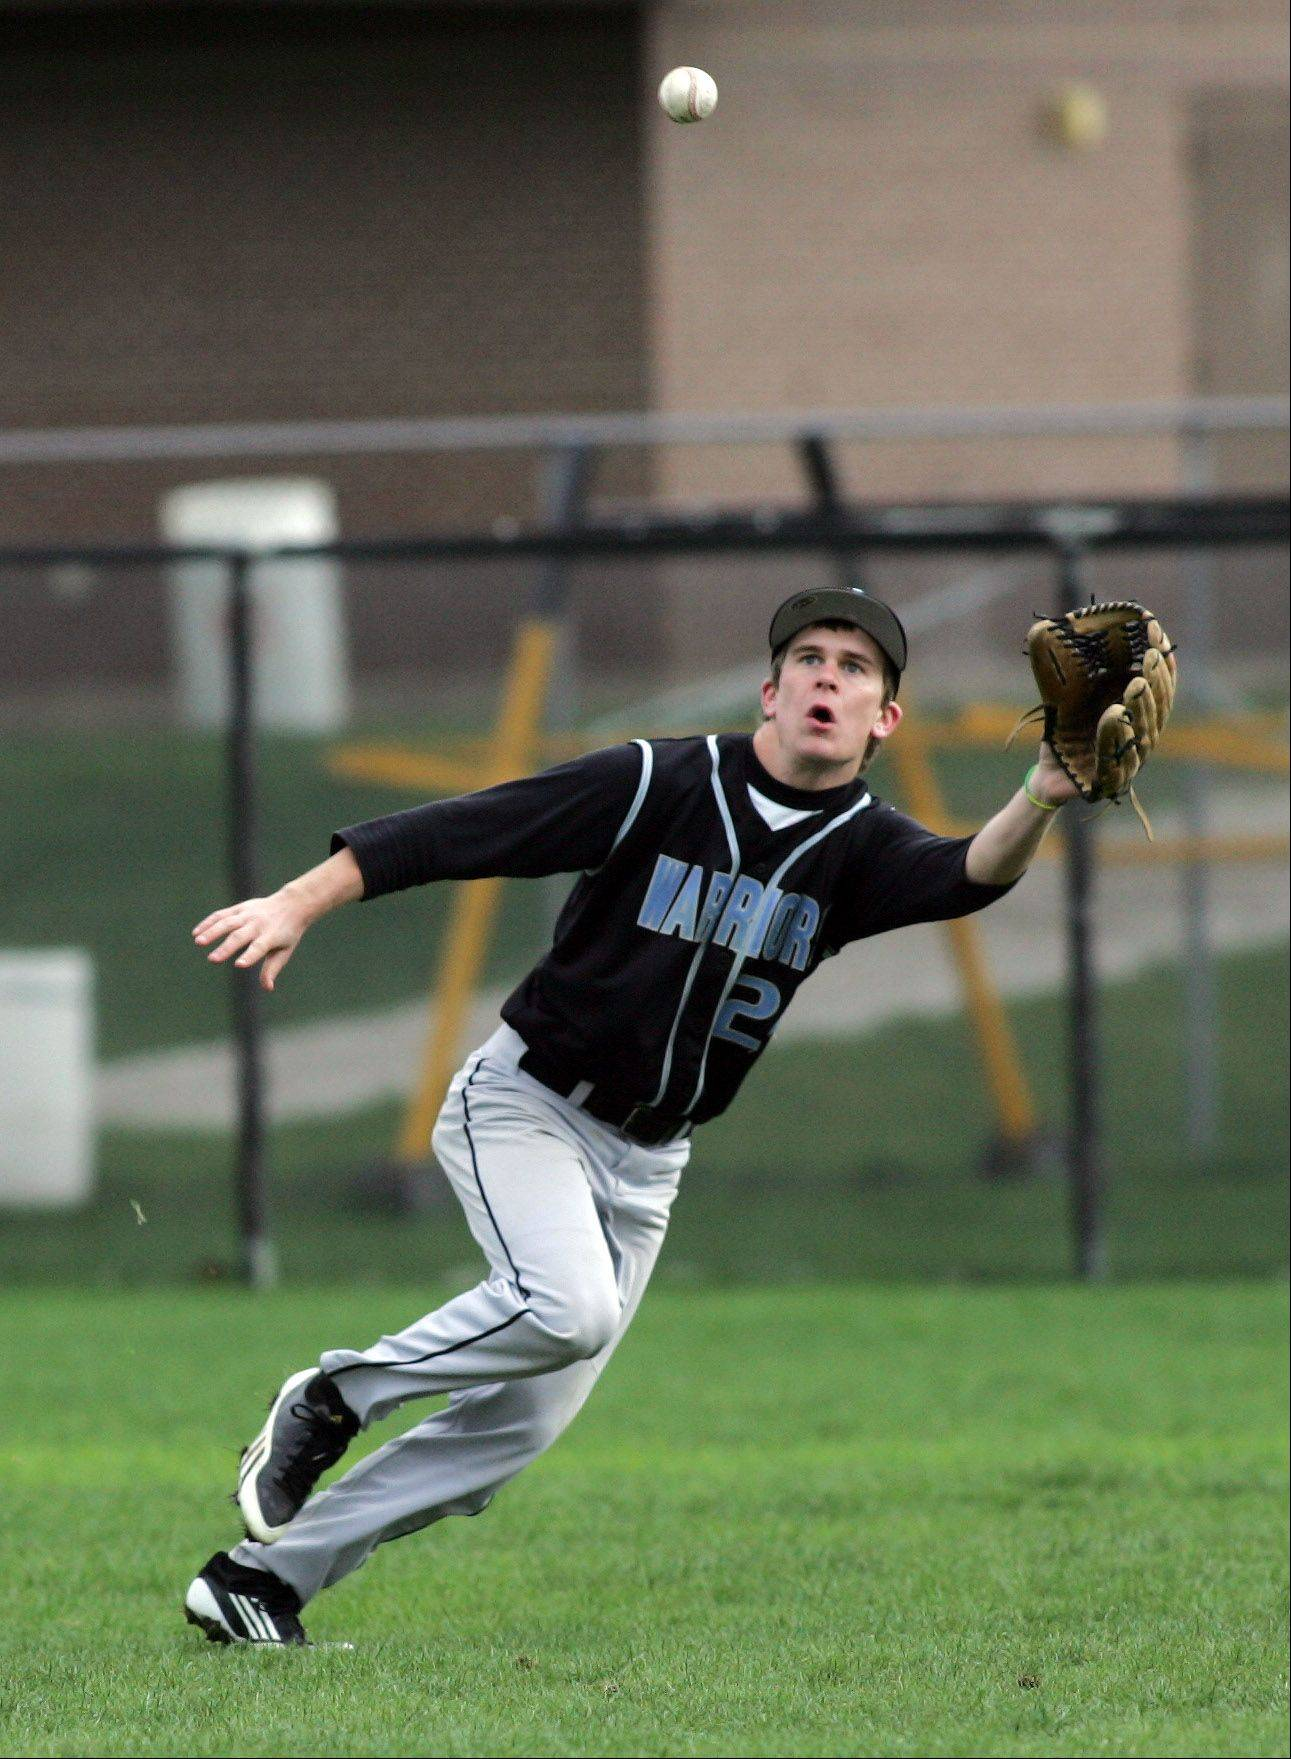 Willowbrook's Steven Ferguson makes a catch in right field in action against Glenbard East Monday in Lombard.